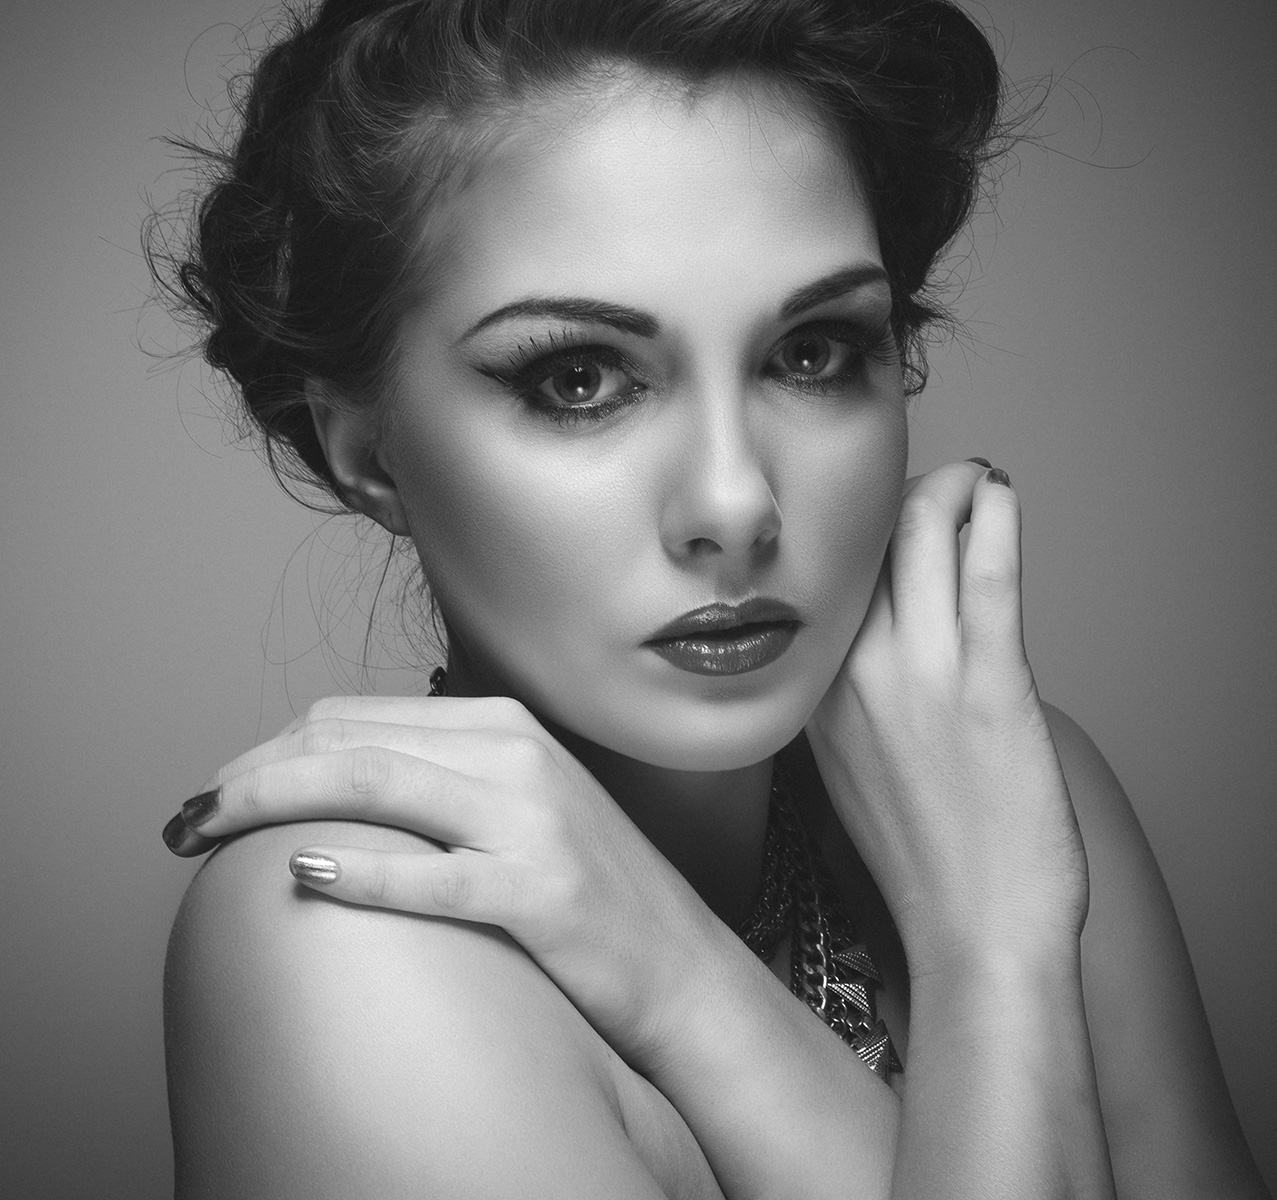 Hair, Makeup and Styling - Rosie Finnigan